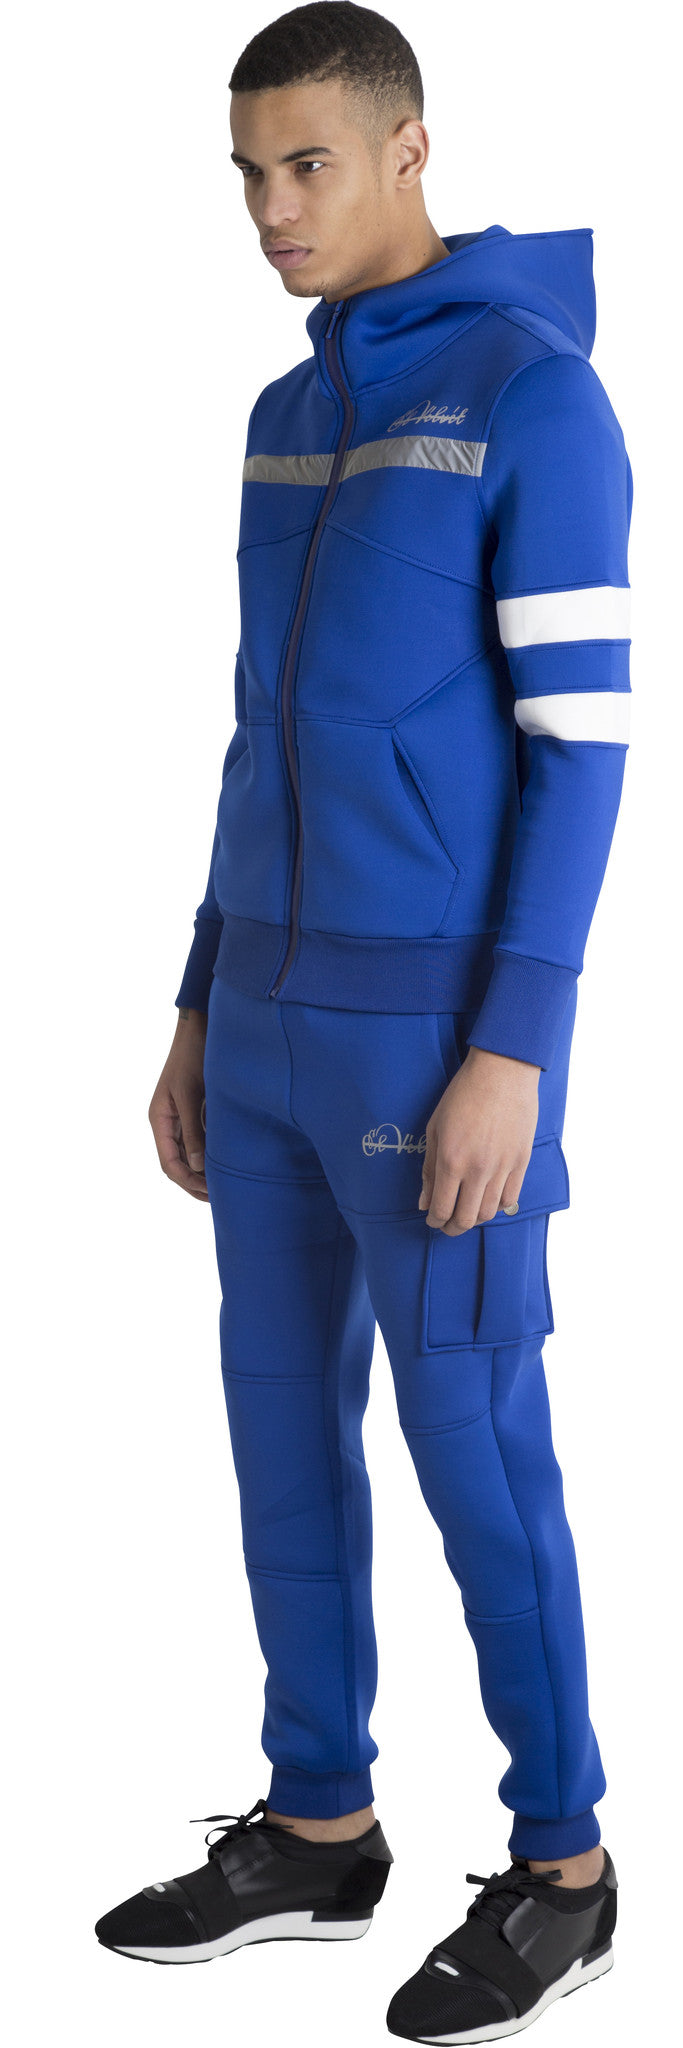 Men Blue Space Cotton with White Stripe Full Tracksuit